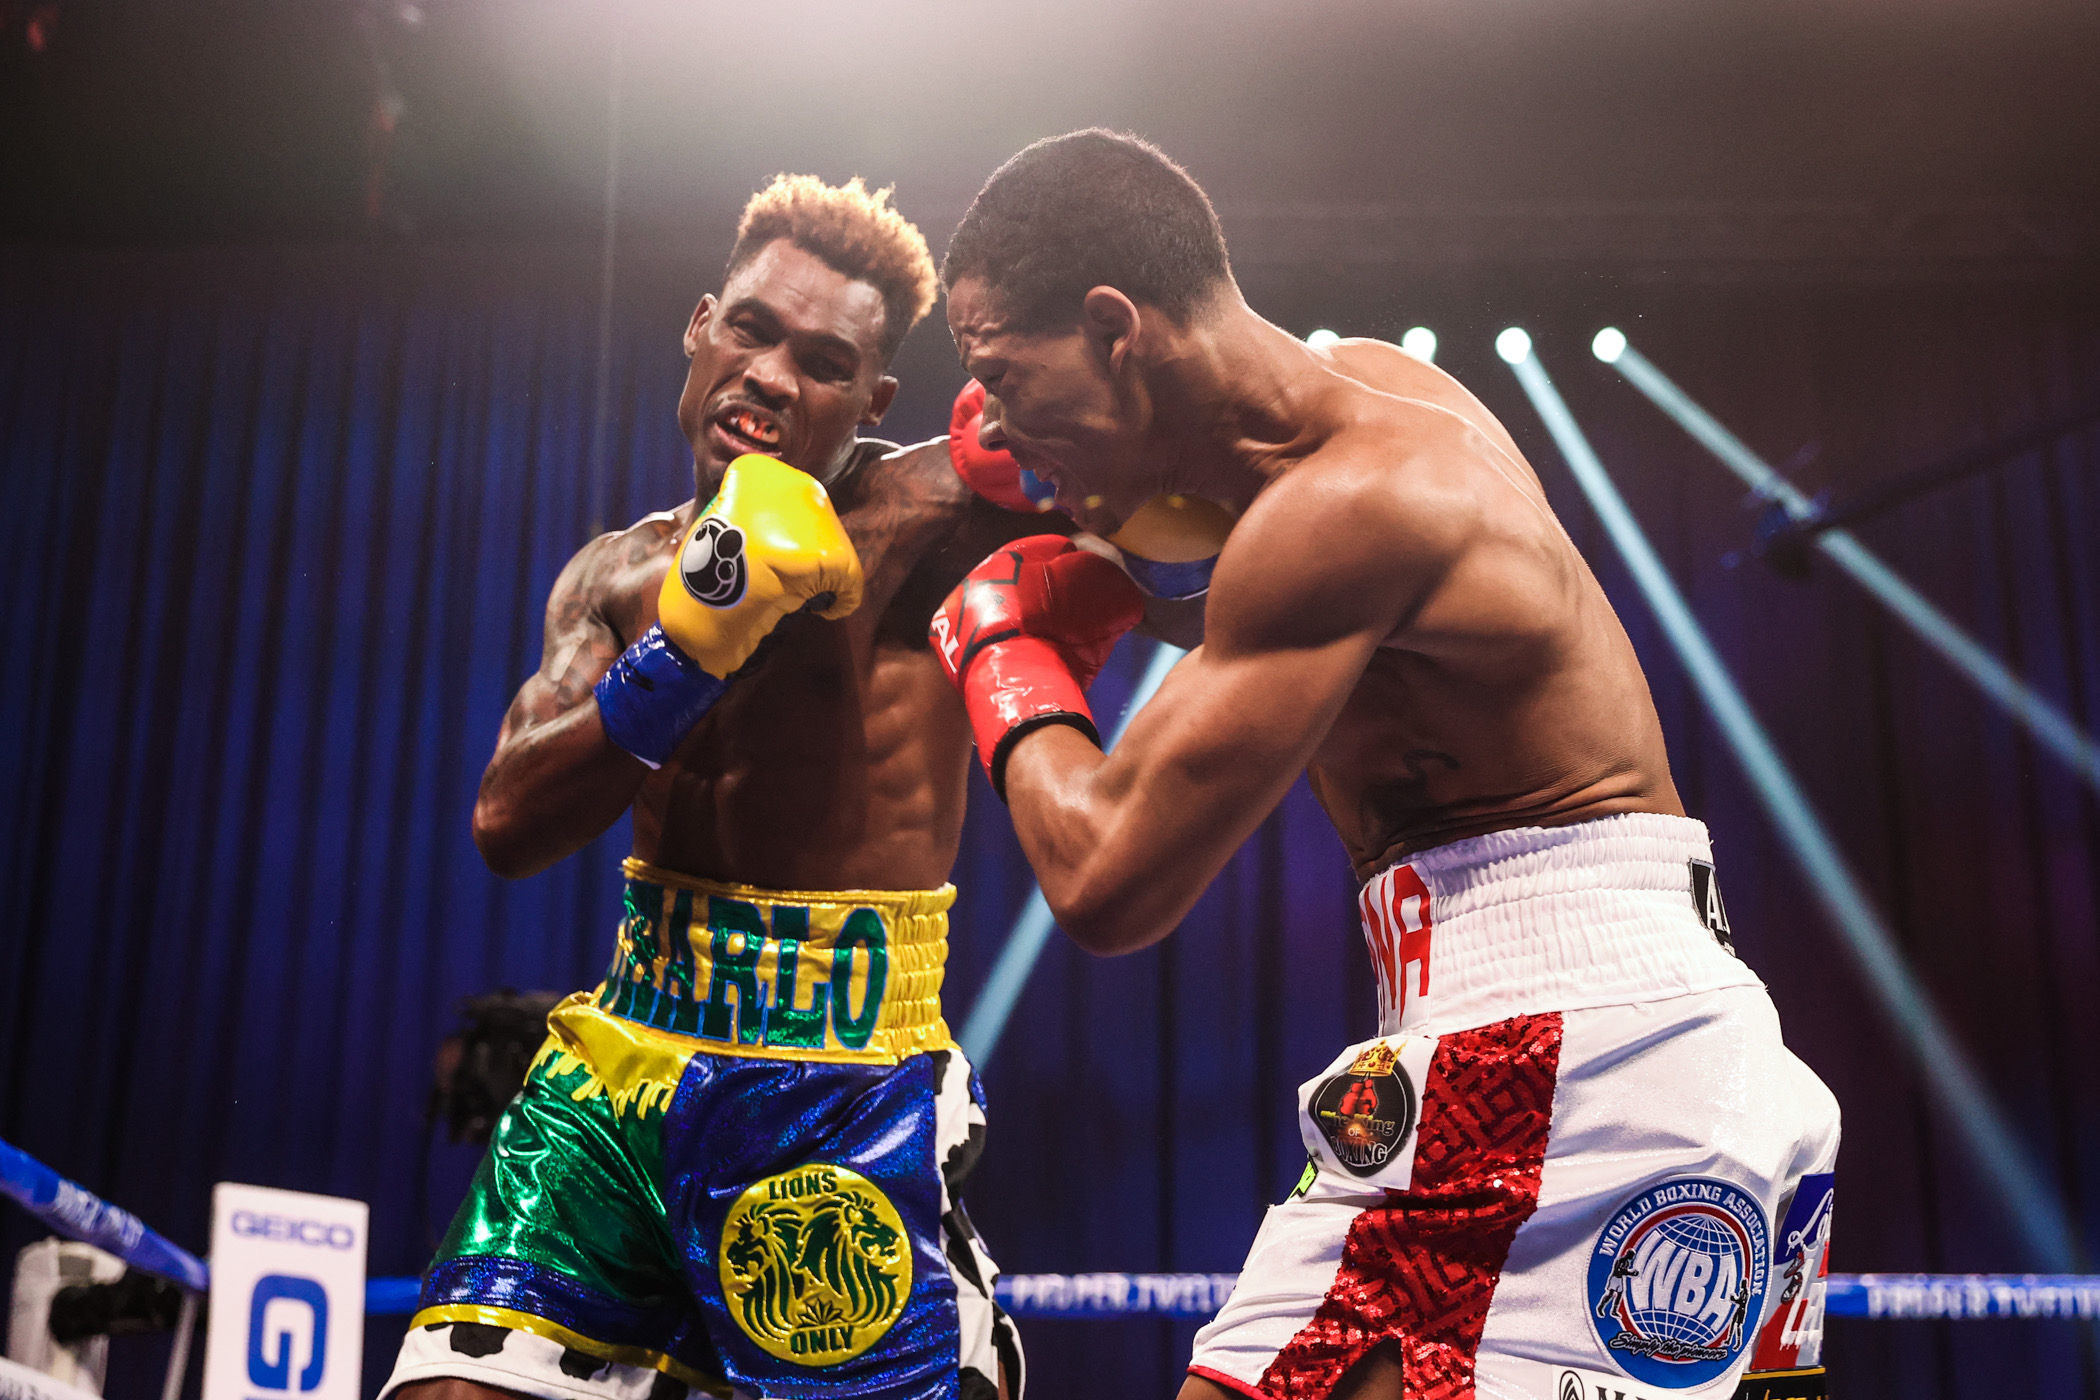 Jermell - Jermall Charlo Knocks Out Jeison Rosario With Stunning Body Shot